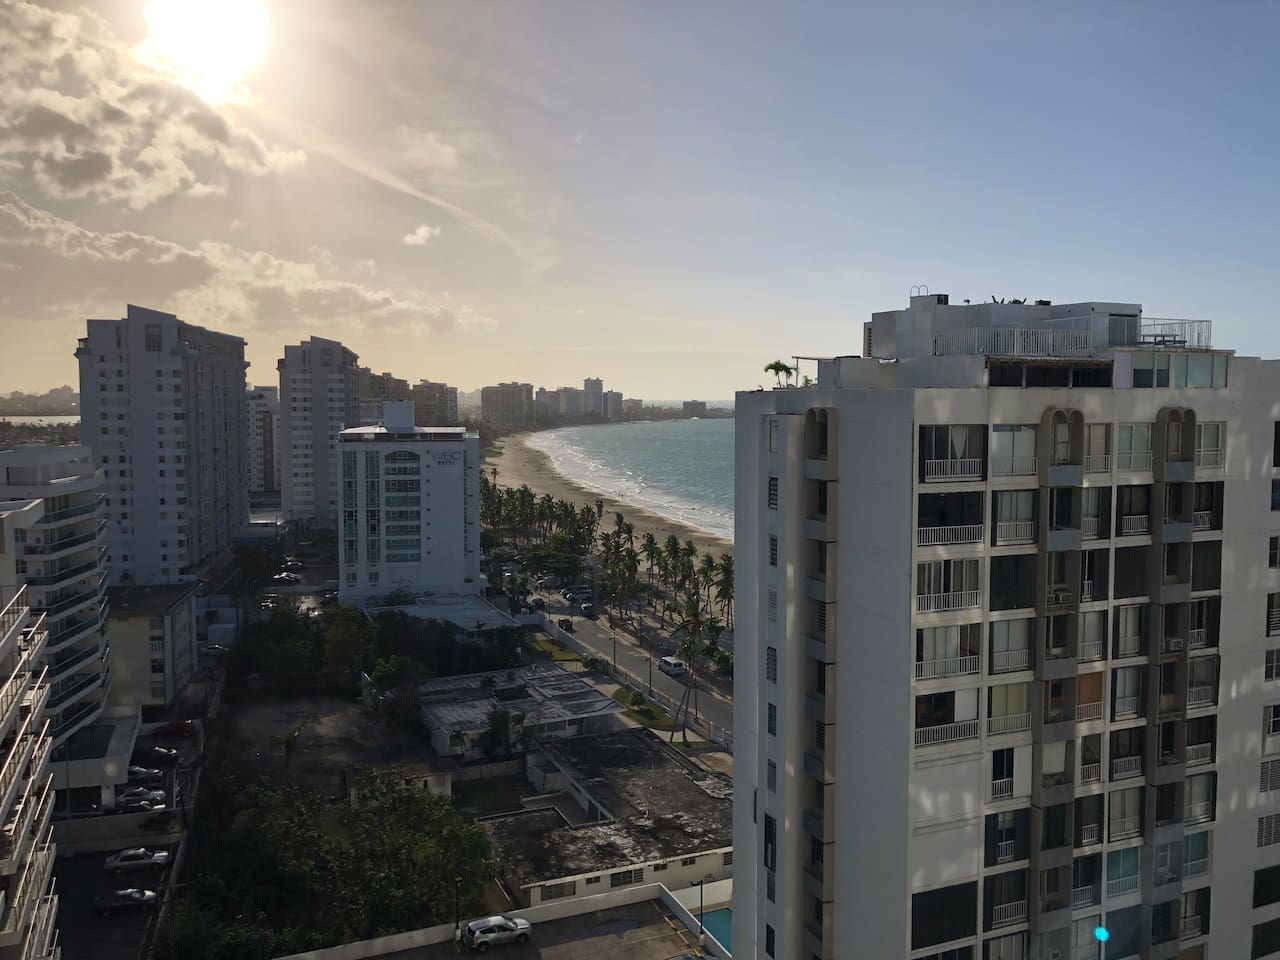 Studio apartment with a beautiful Ocean View, with a private entrance to the beach, 24/7 security, gym, parking, 30mb WiFi, and tons of near by restaurants, shops, CVS, Walgreens, hotels, bars, and more. This is the place to be in San Juan!